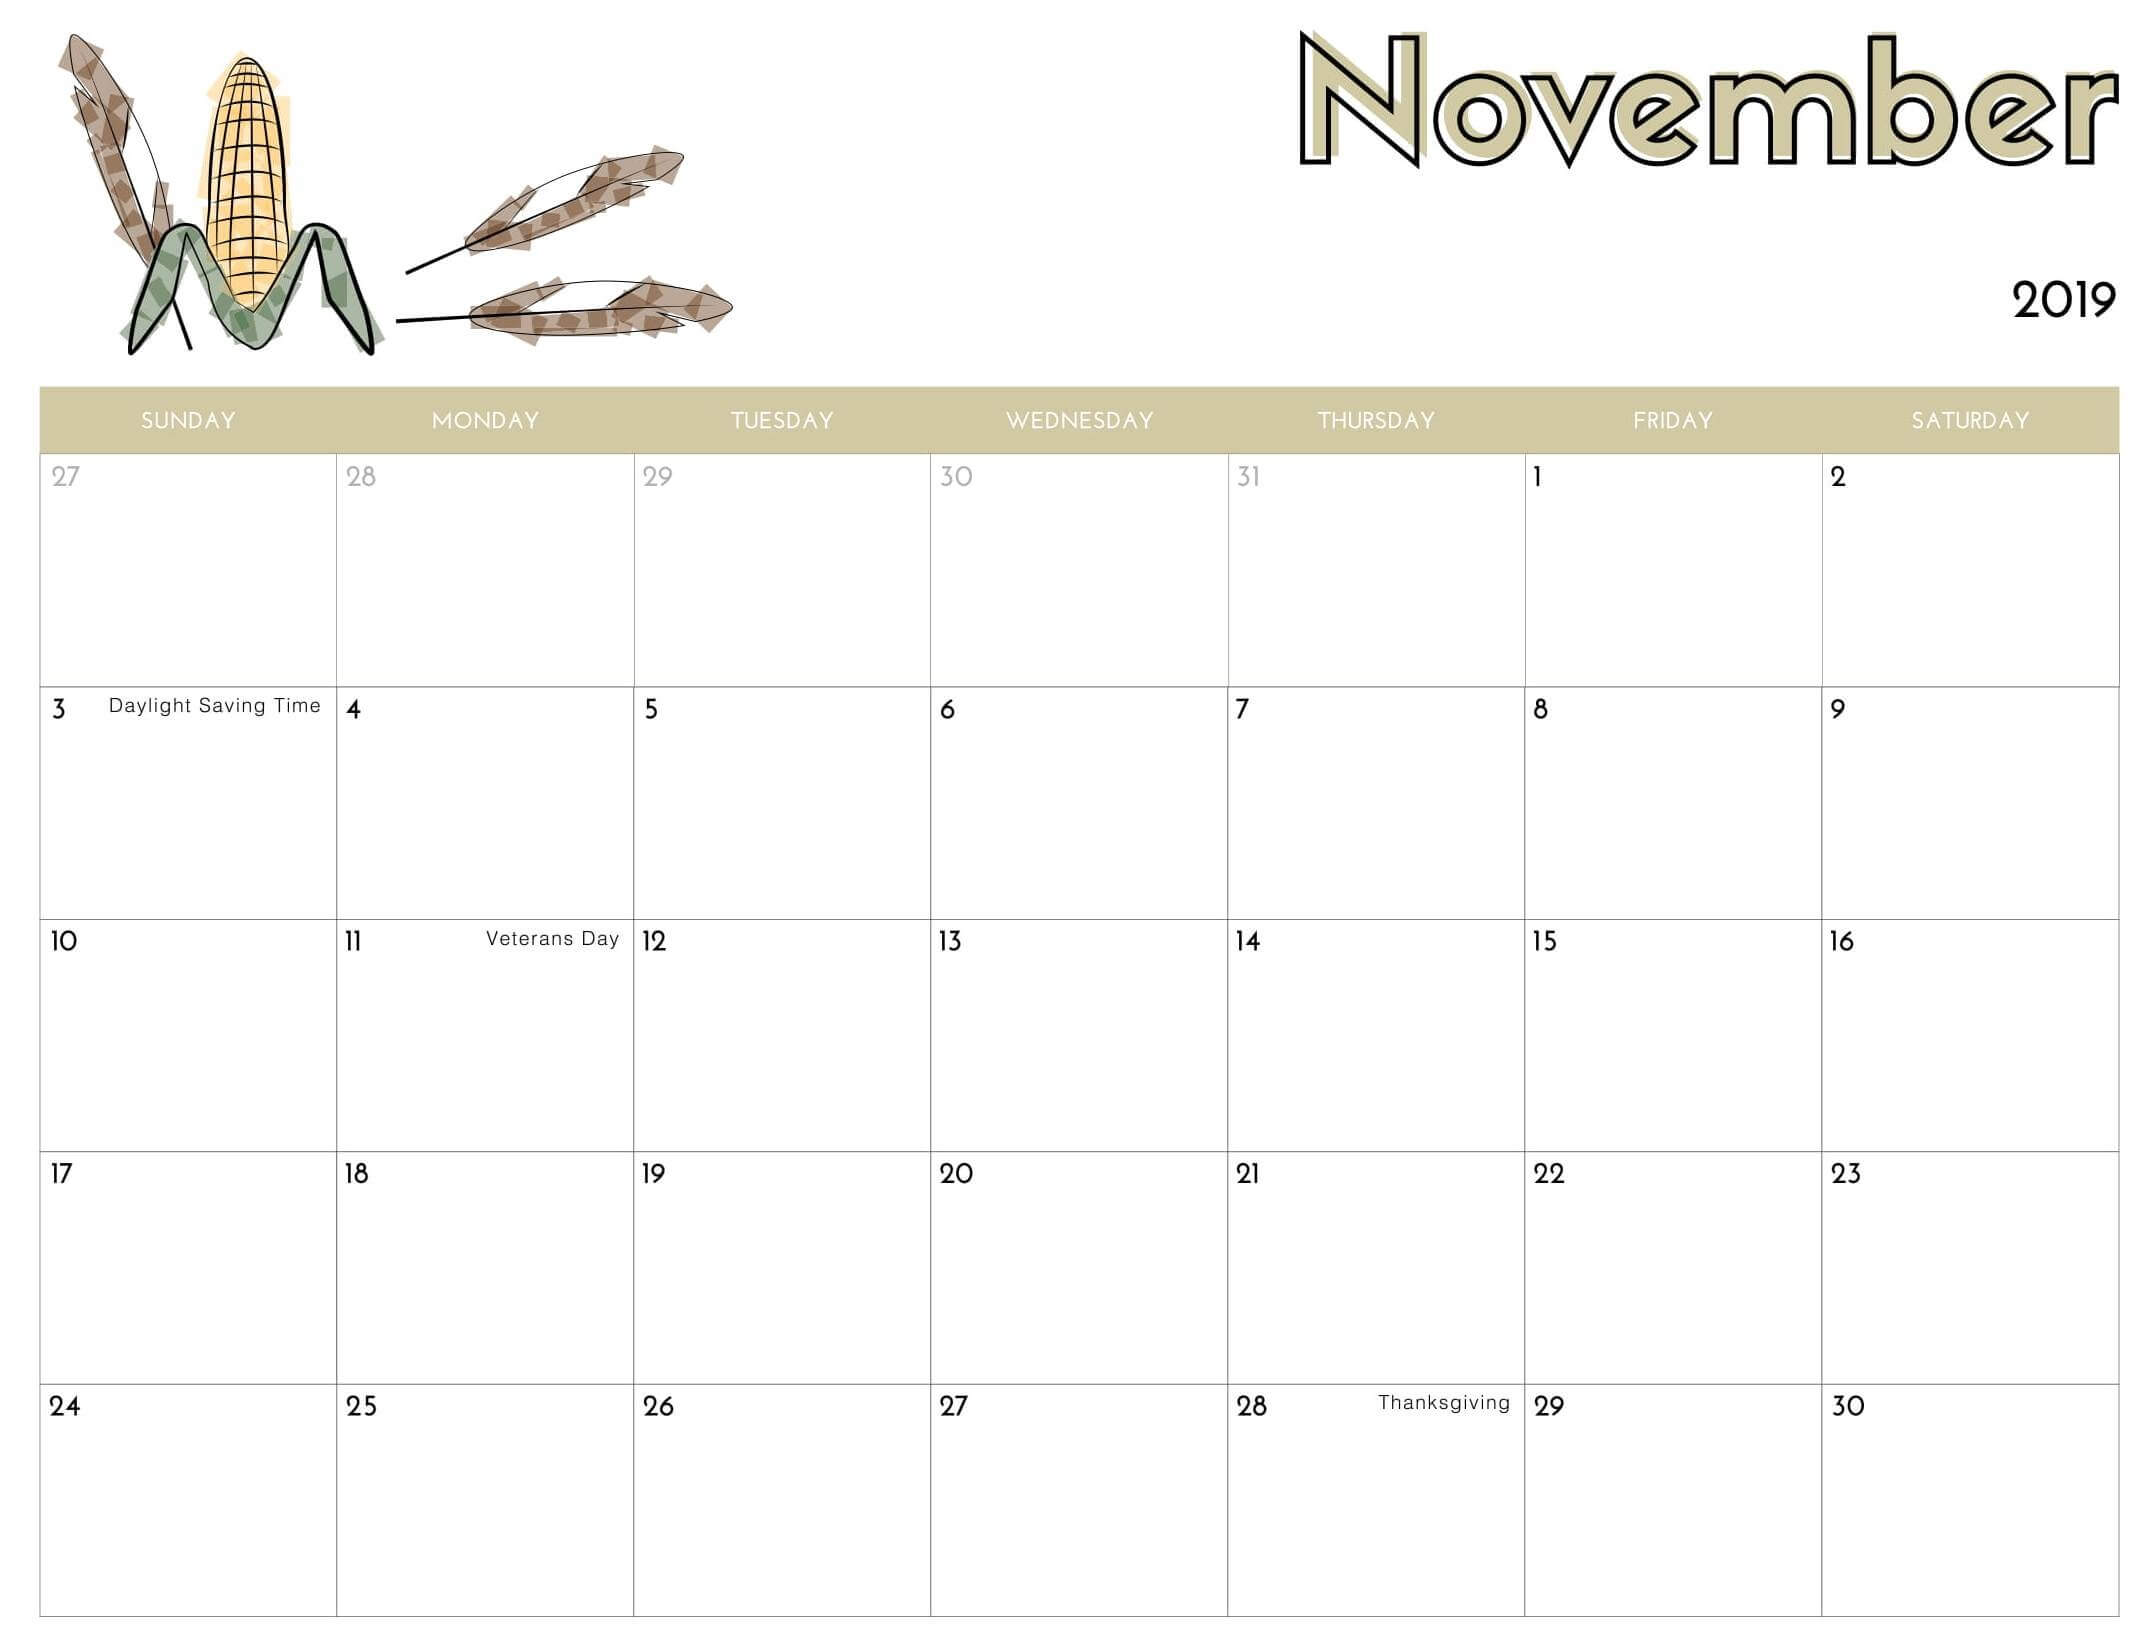 November 2019 Calendar Printable Images